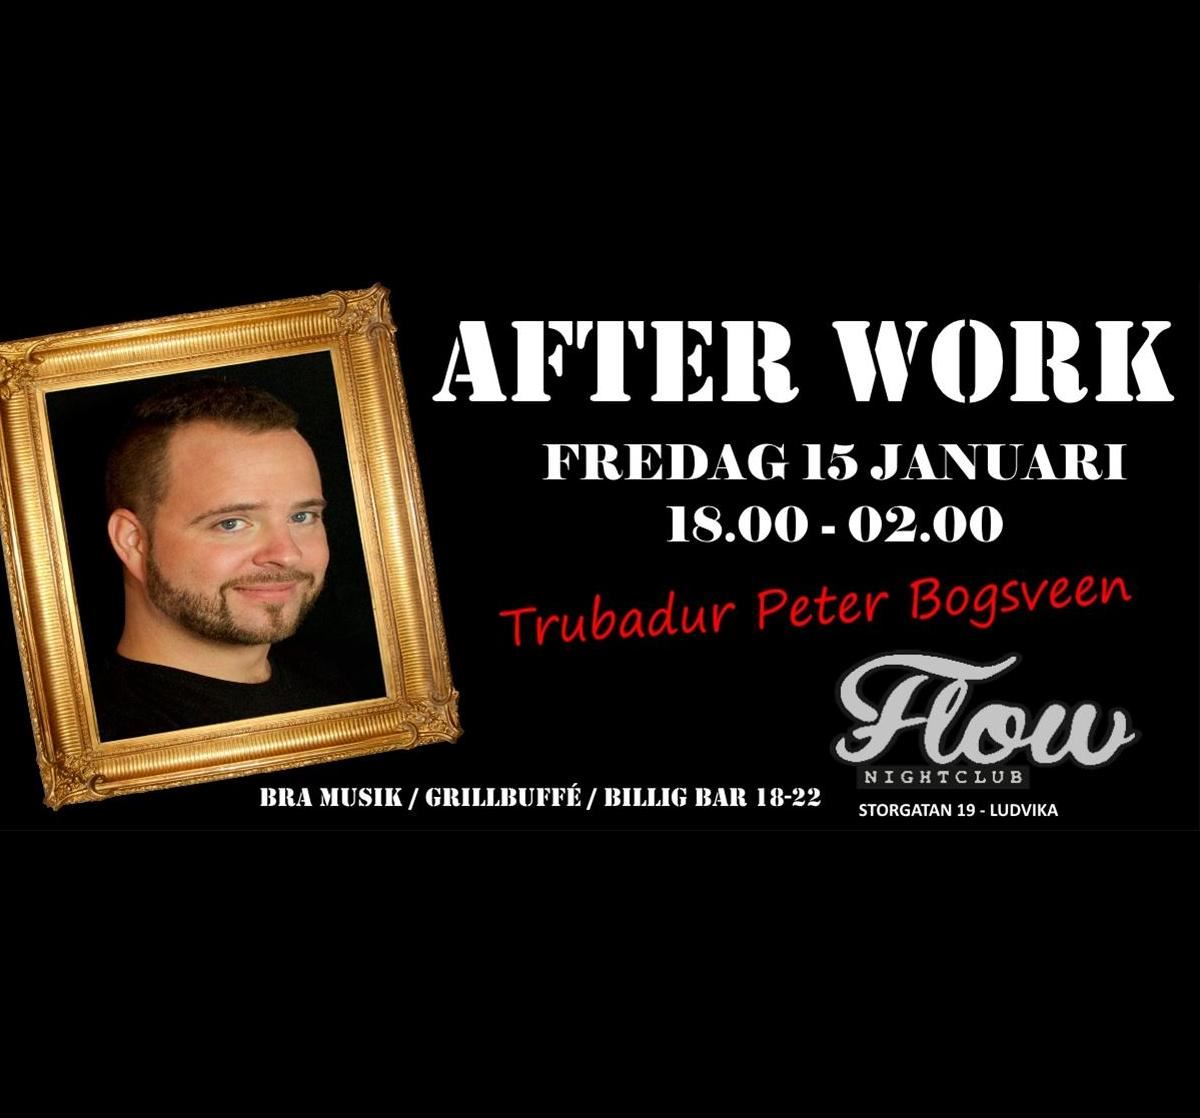 After Work med Peter Bogsveen